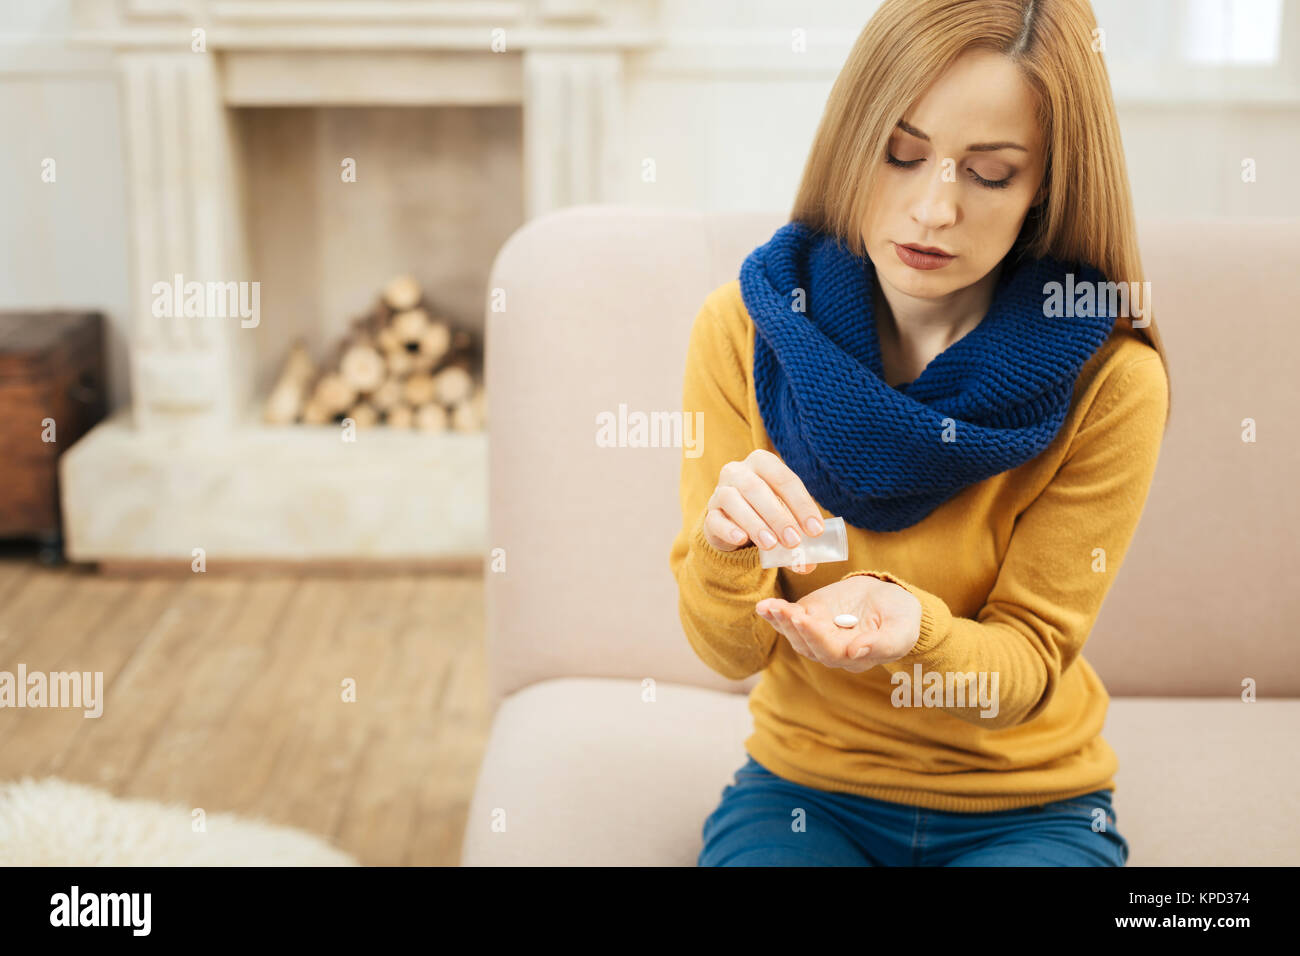 Unwell blond woman taking pills - Stock Image